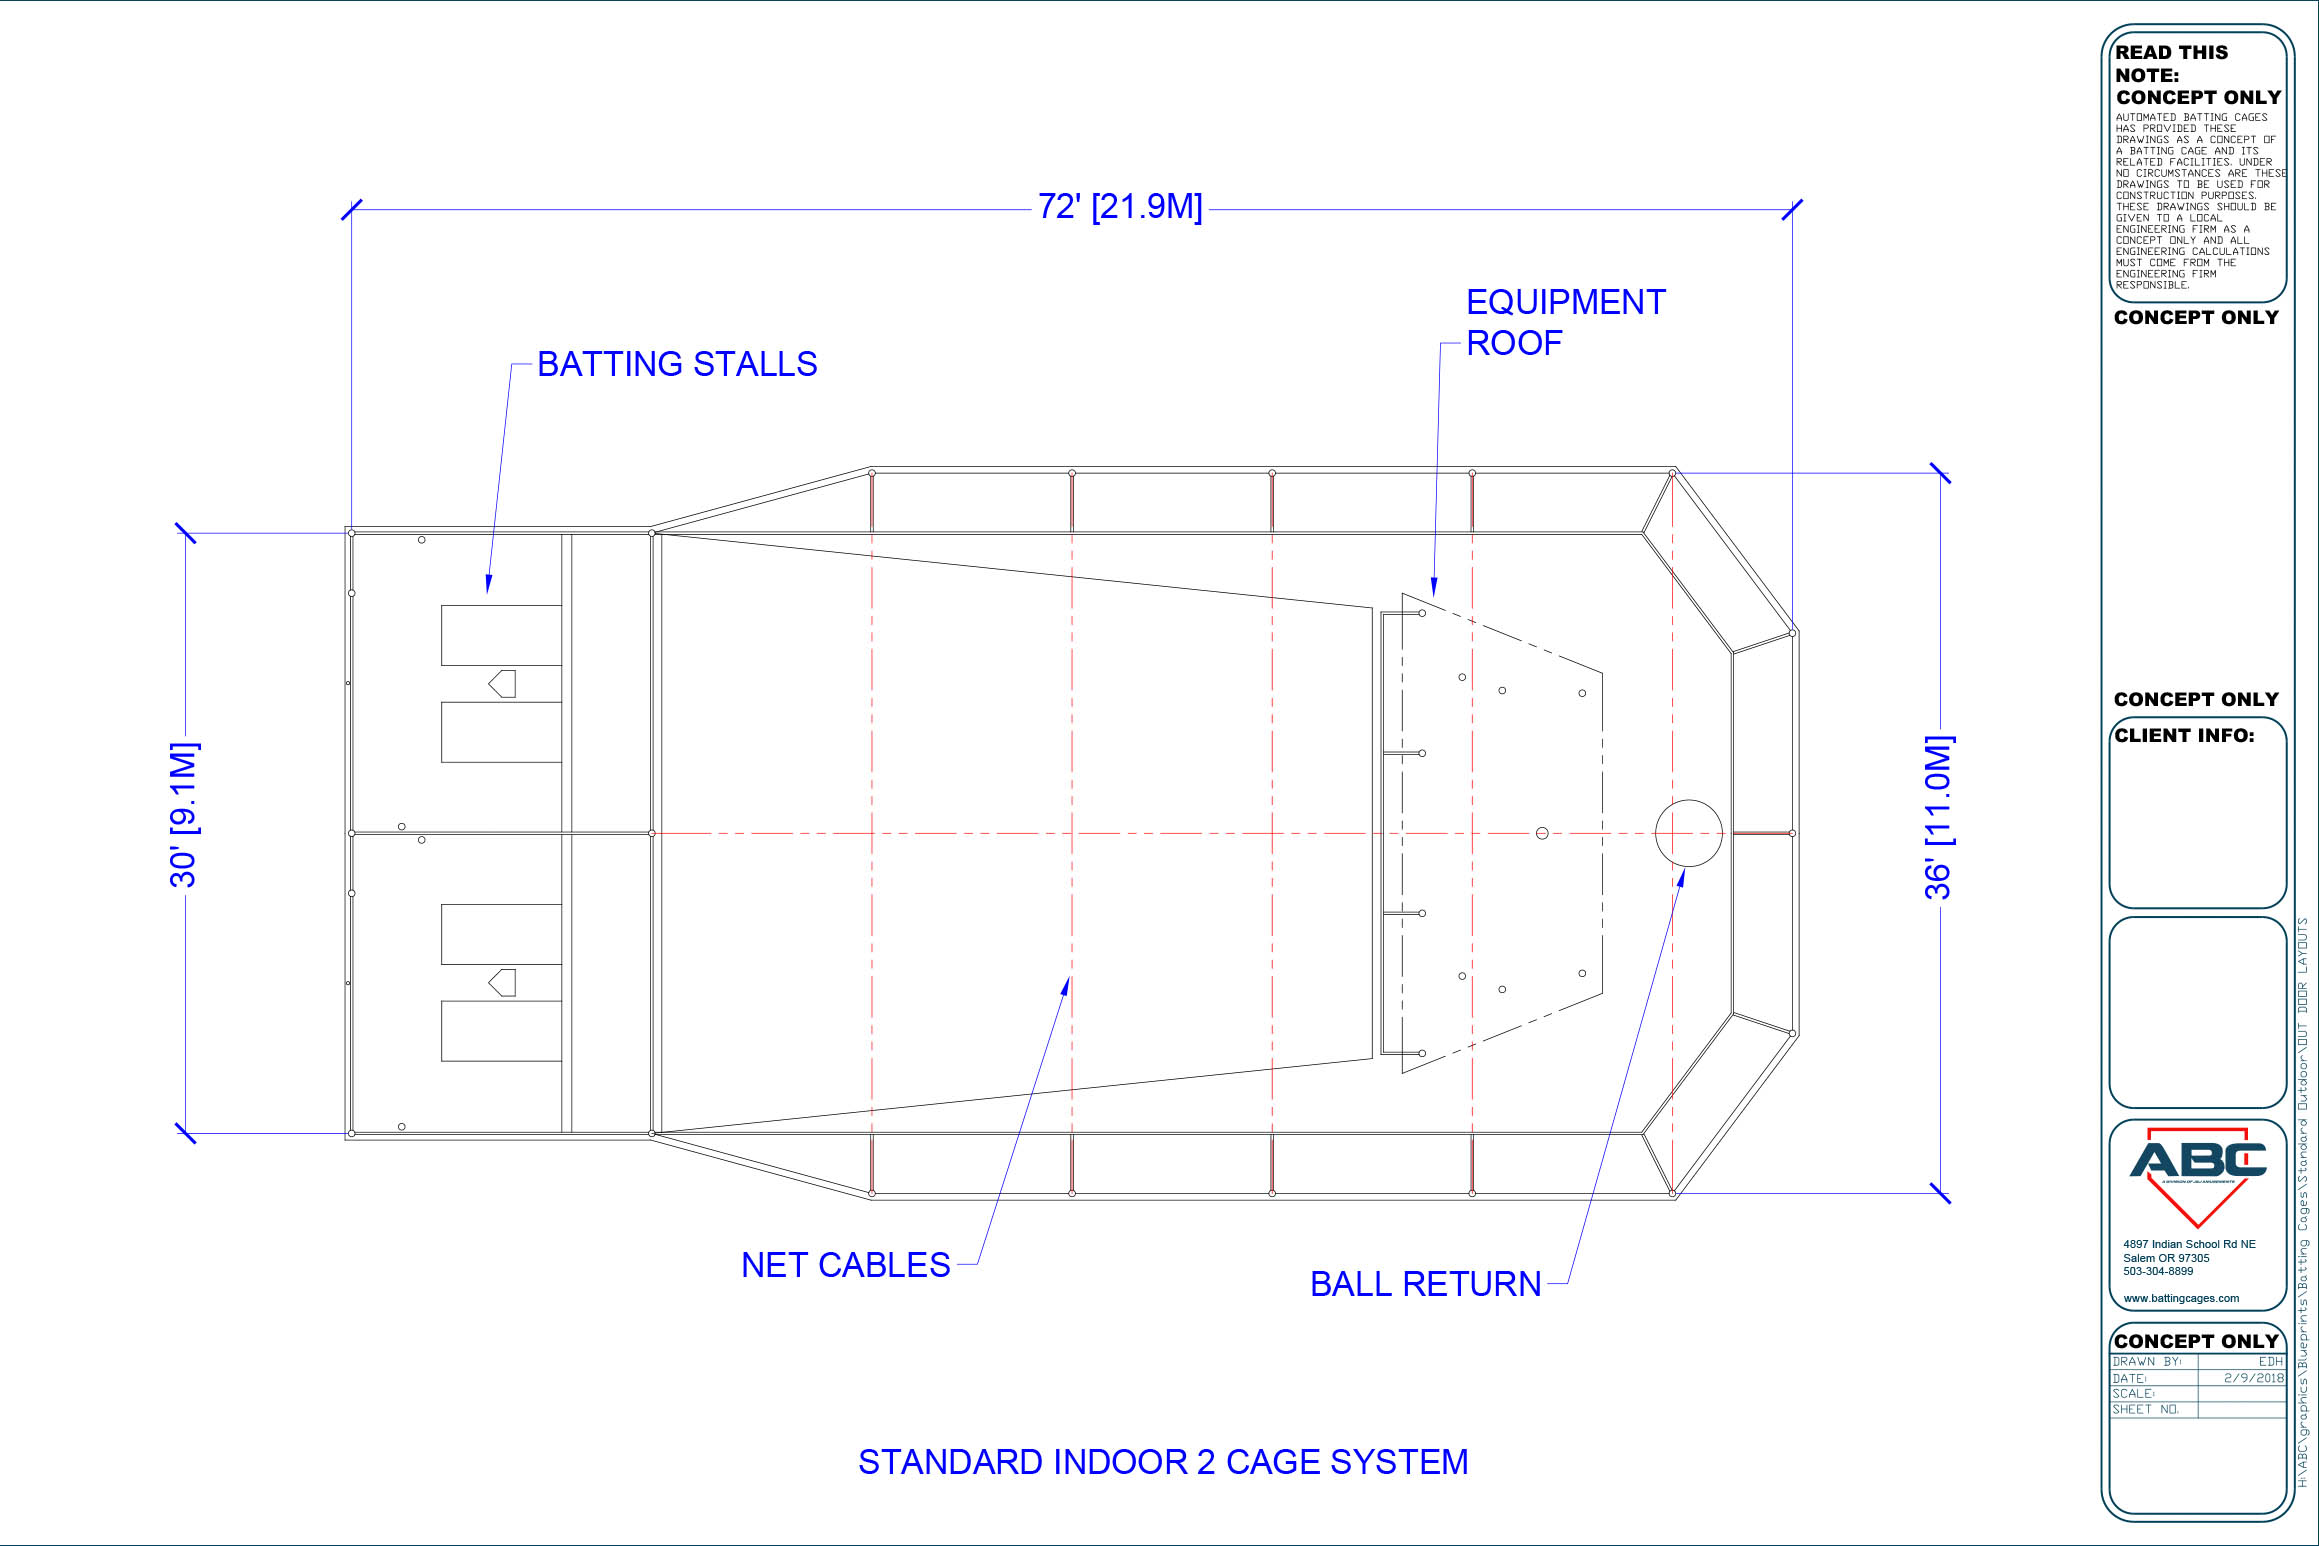 ABC standard indoor 2 cage system blueprint